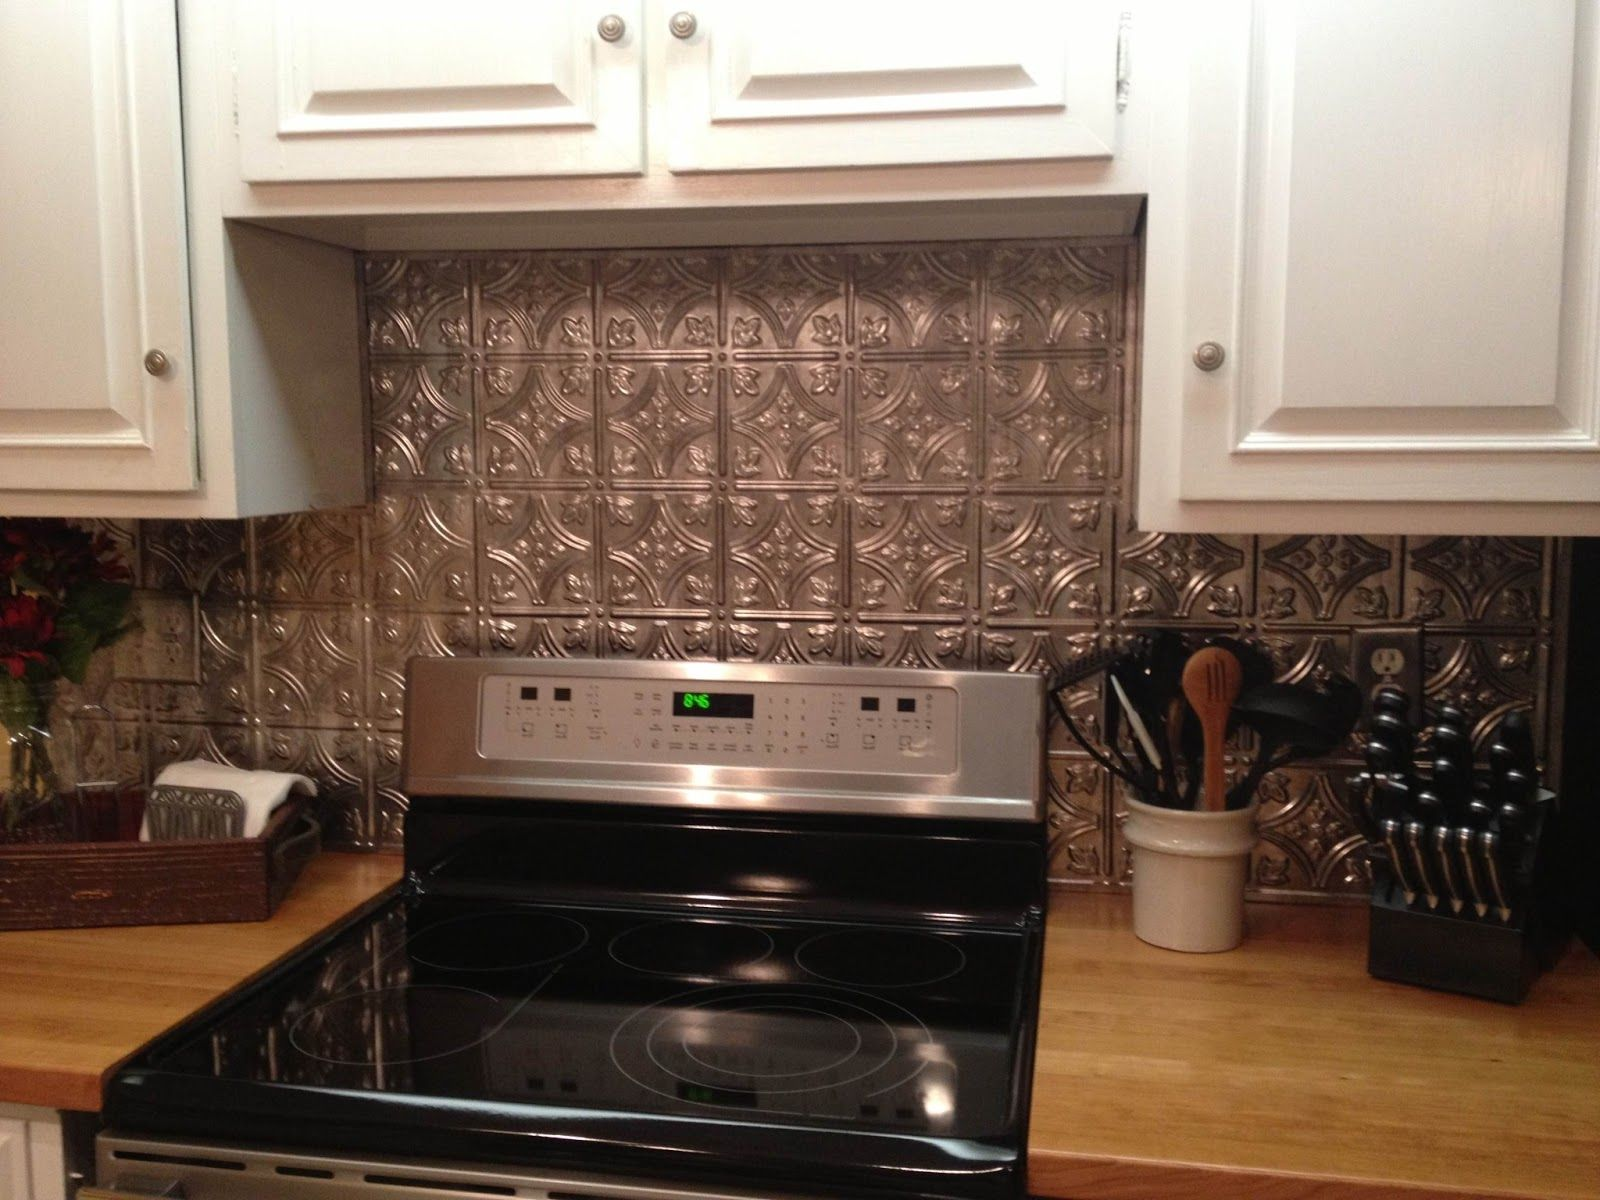 Cool Diy Faux Tin Kitchen Backsplash With Vase Top 12 Faux Tin Kitchen Backsplash Ideas